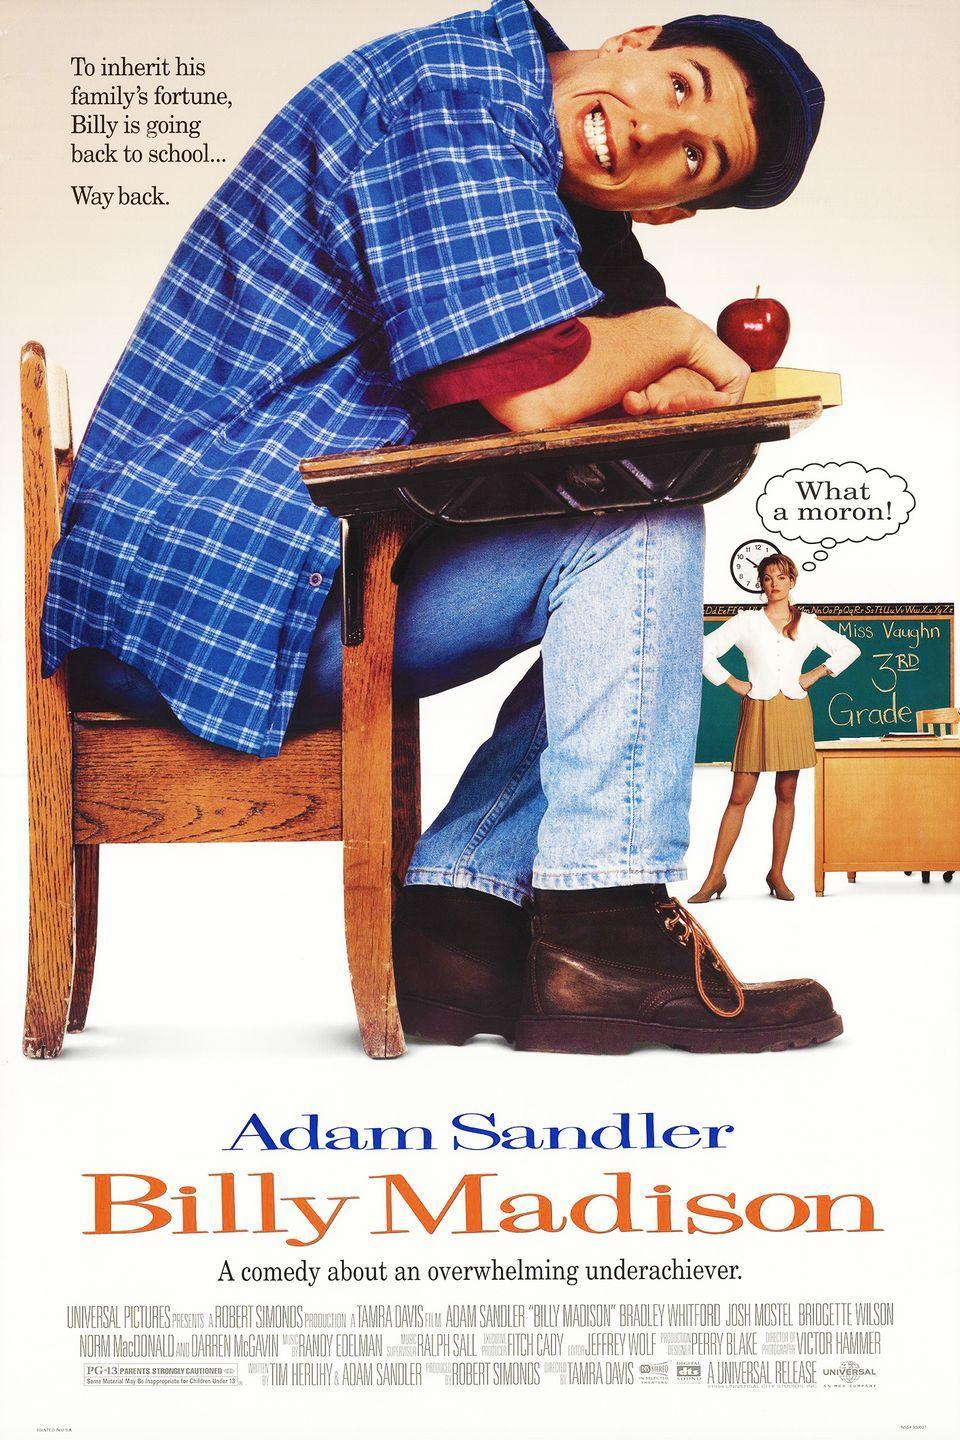 <p><strong>Role: </strong>Billy Madison<br></p><p>Adam Sandler's breakthrough performance (what a weird thing to type) sees him as a super-rich manchild who somehow cons everyone into believing he's charming and endearing. Kinda makes you think, doesn't it?<br></p>